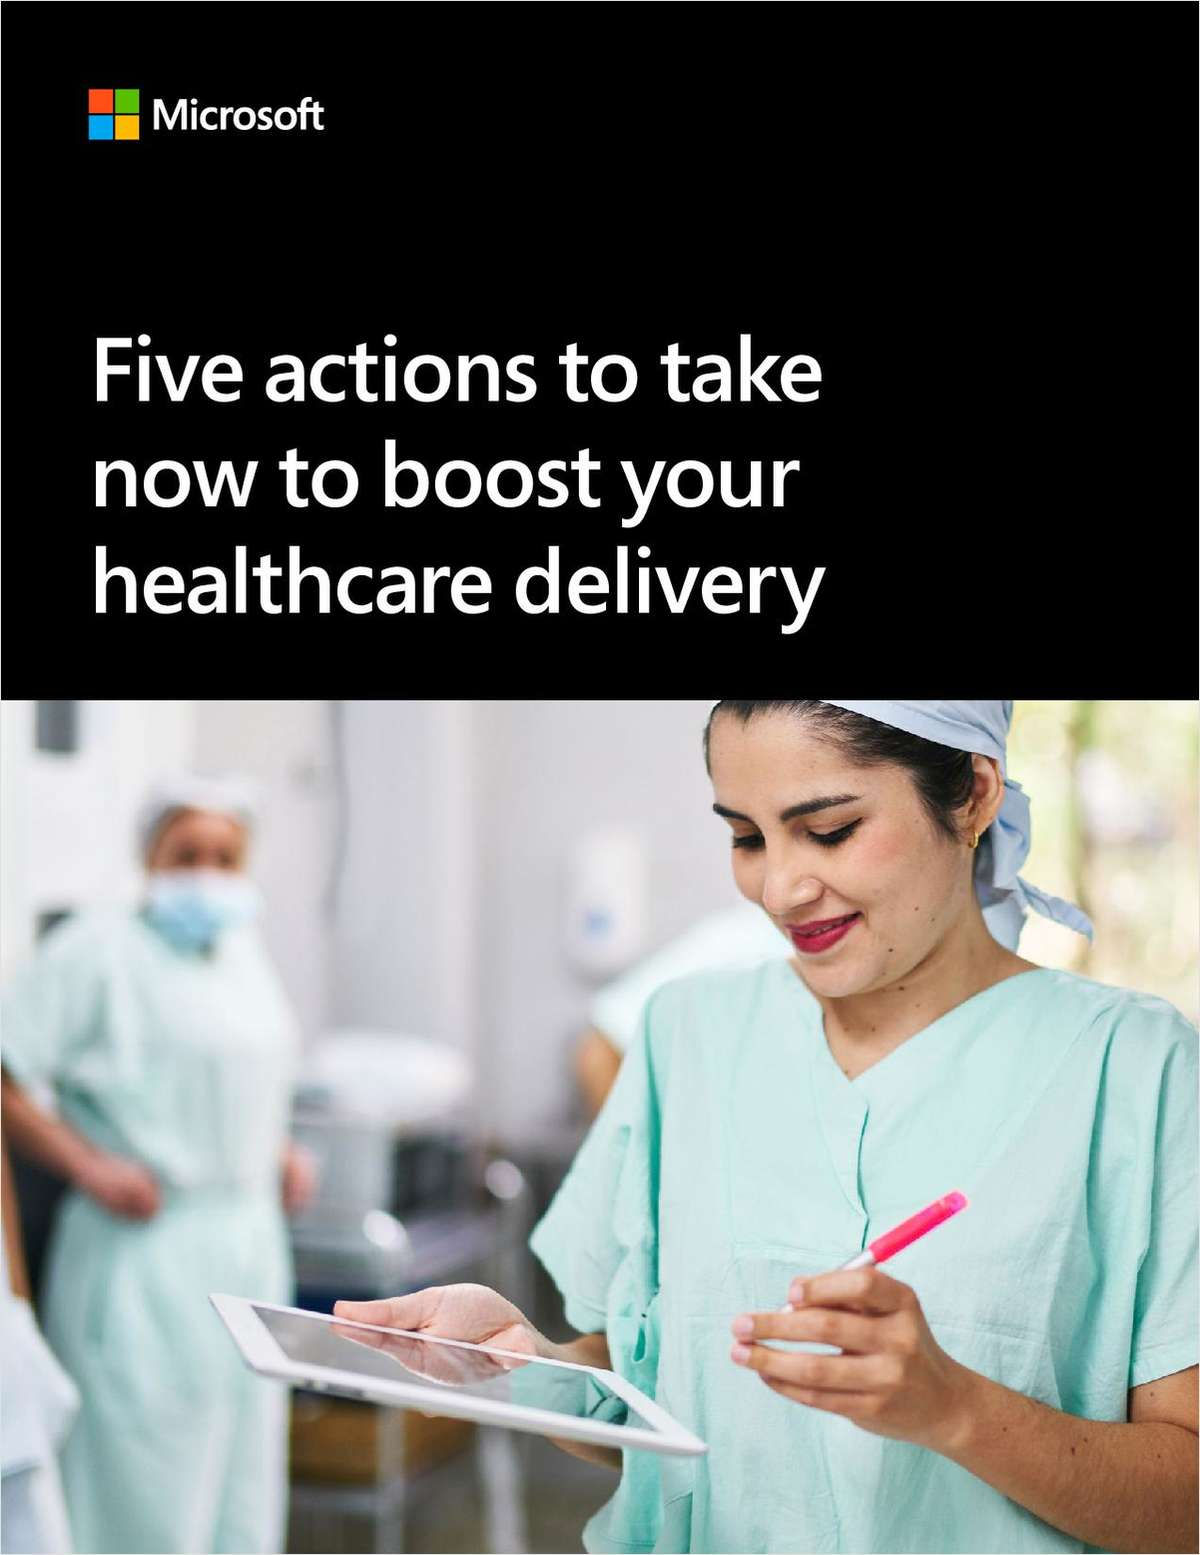 Five Action to Take Now to Boost Your Healthcare Delivery